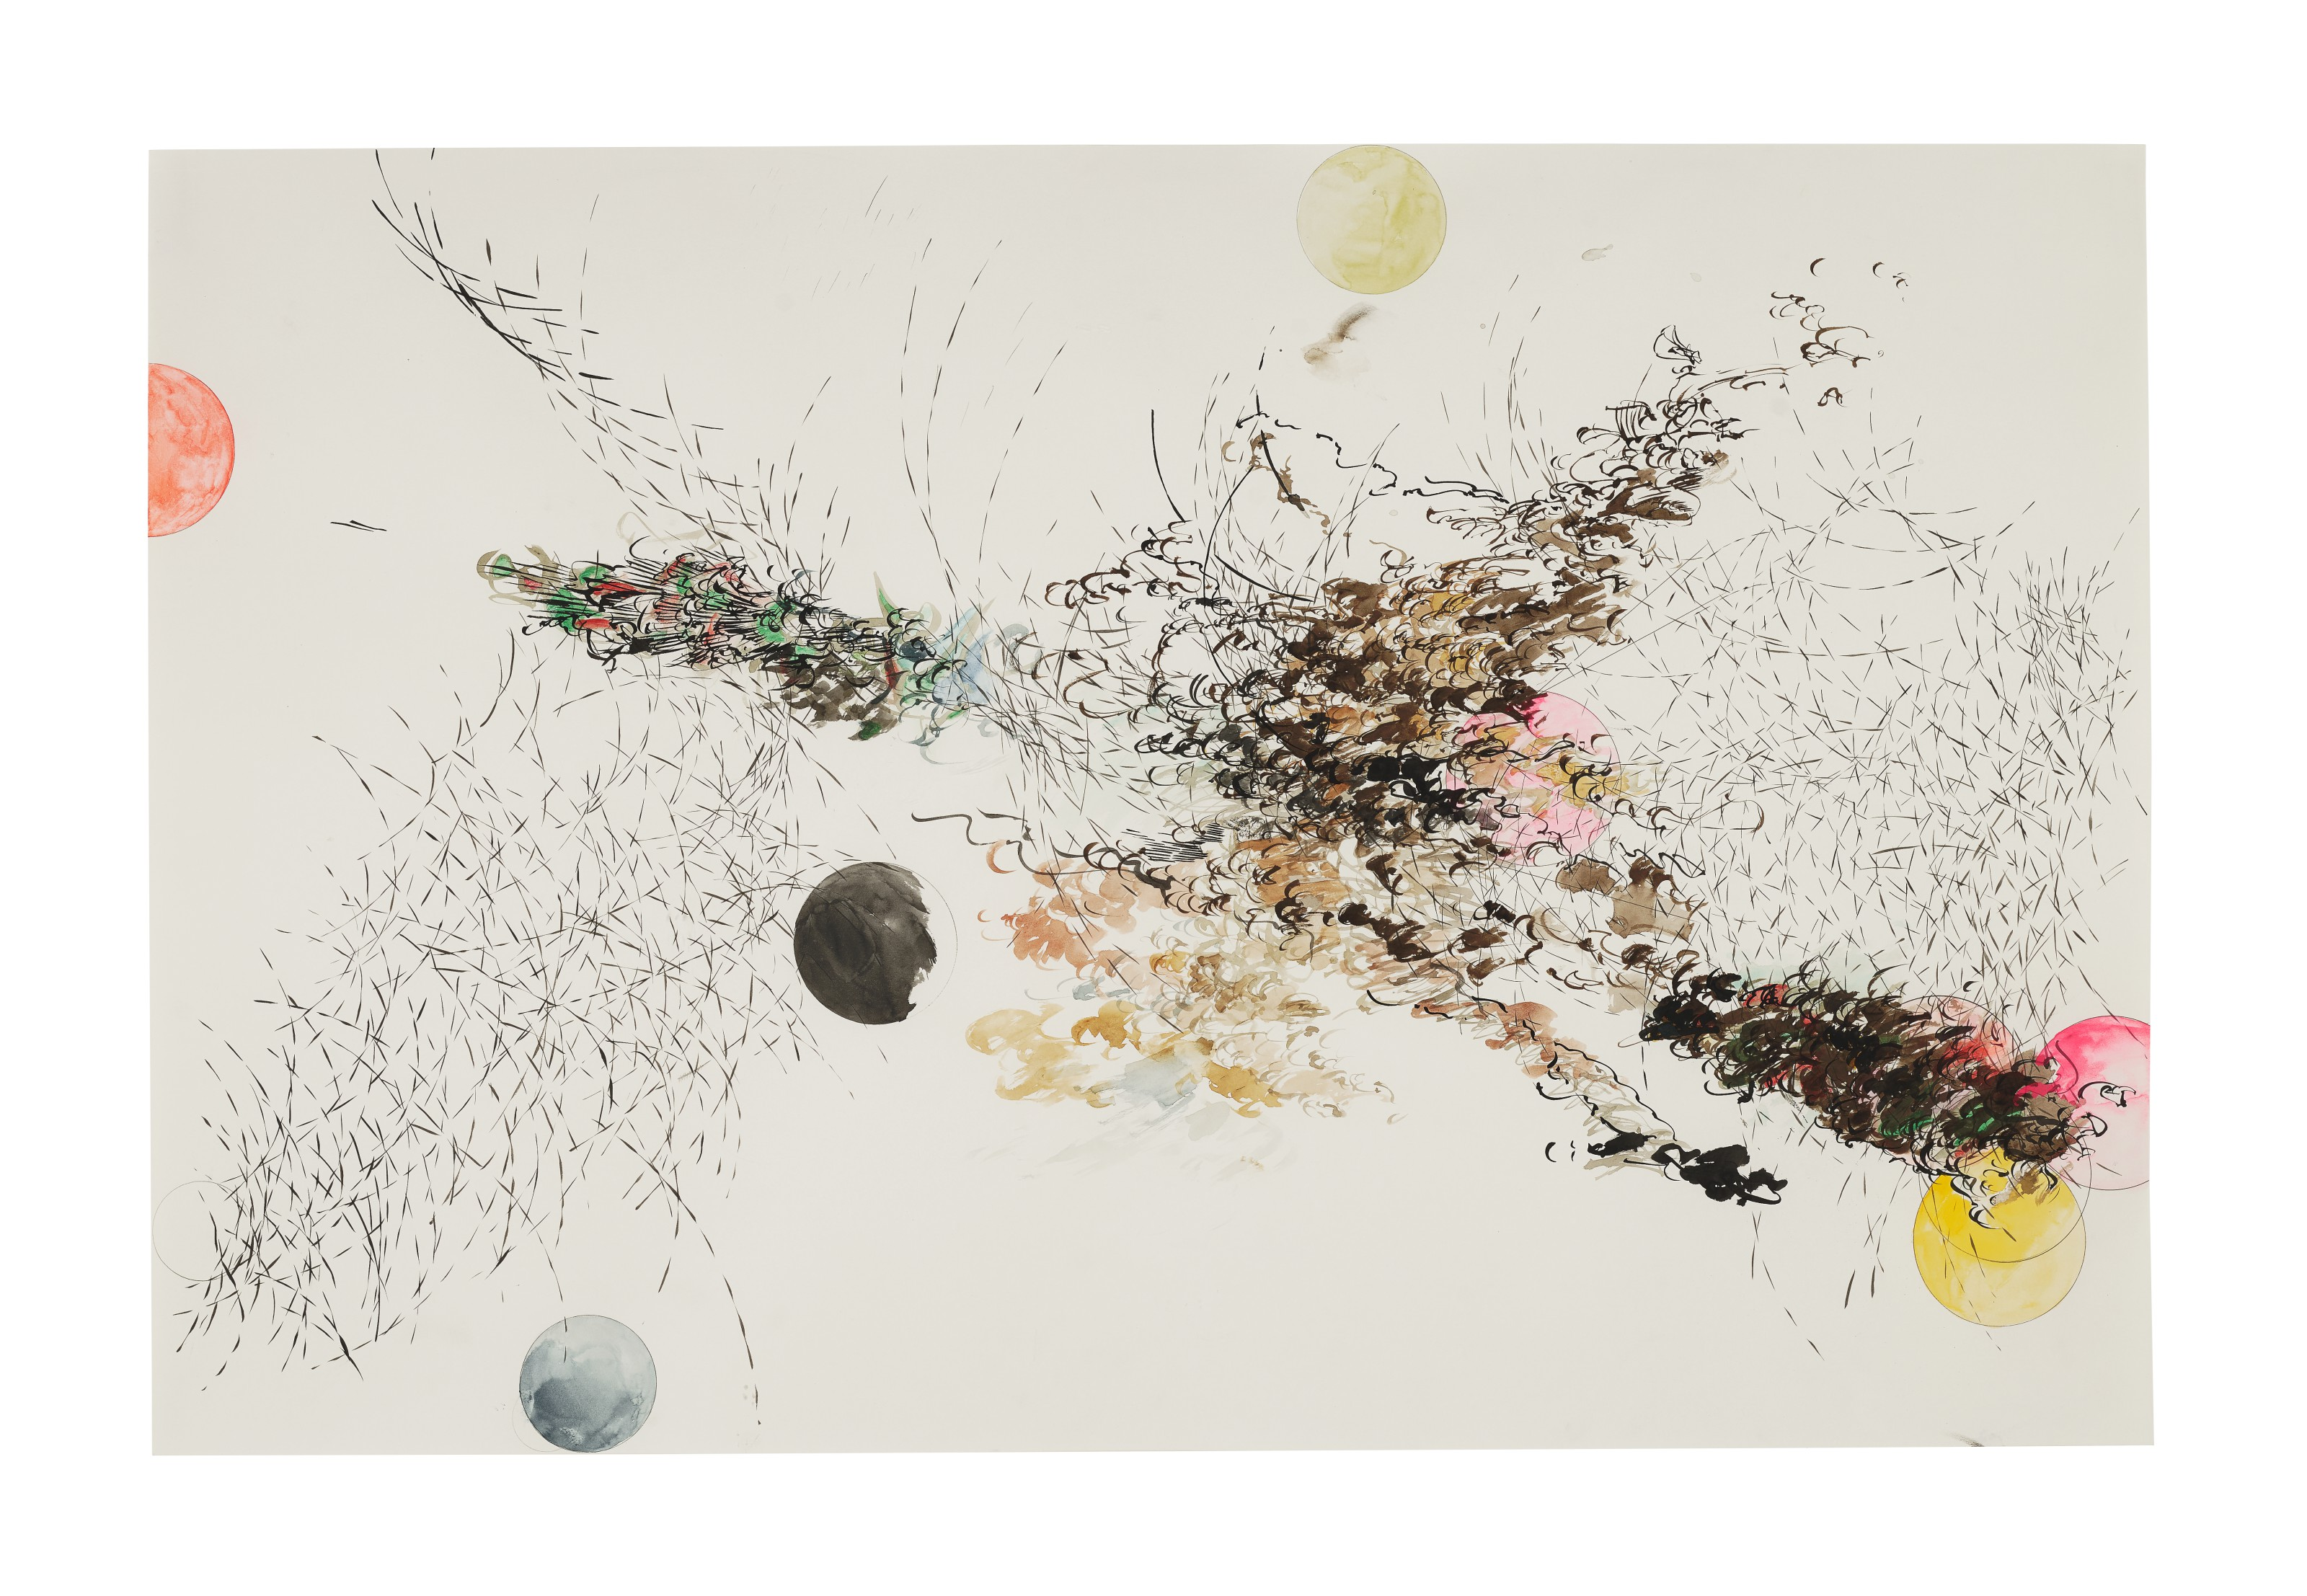 Julie Mehretu (b. 1970), Untitled, 2006.Graphite, watercolor and ink on paper. 26 x 40 in (66 x 101.6 cm). Estimate $120,000-180,000. Offered inPost-War to Present on 1 October 2021 at Christie's in New York